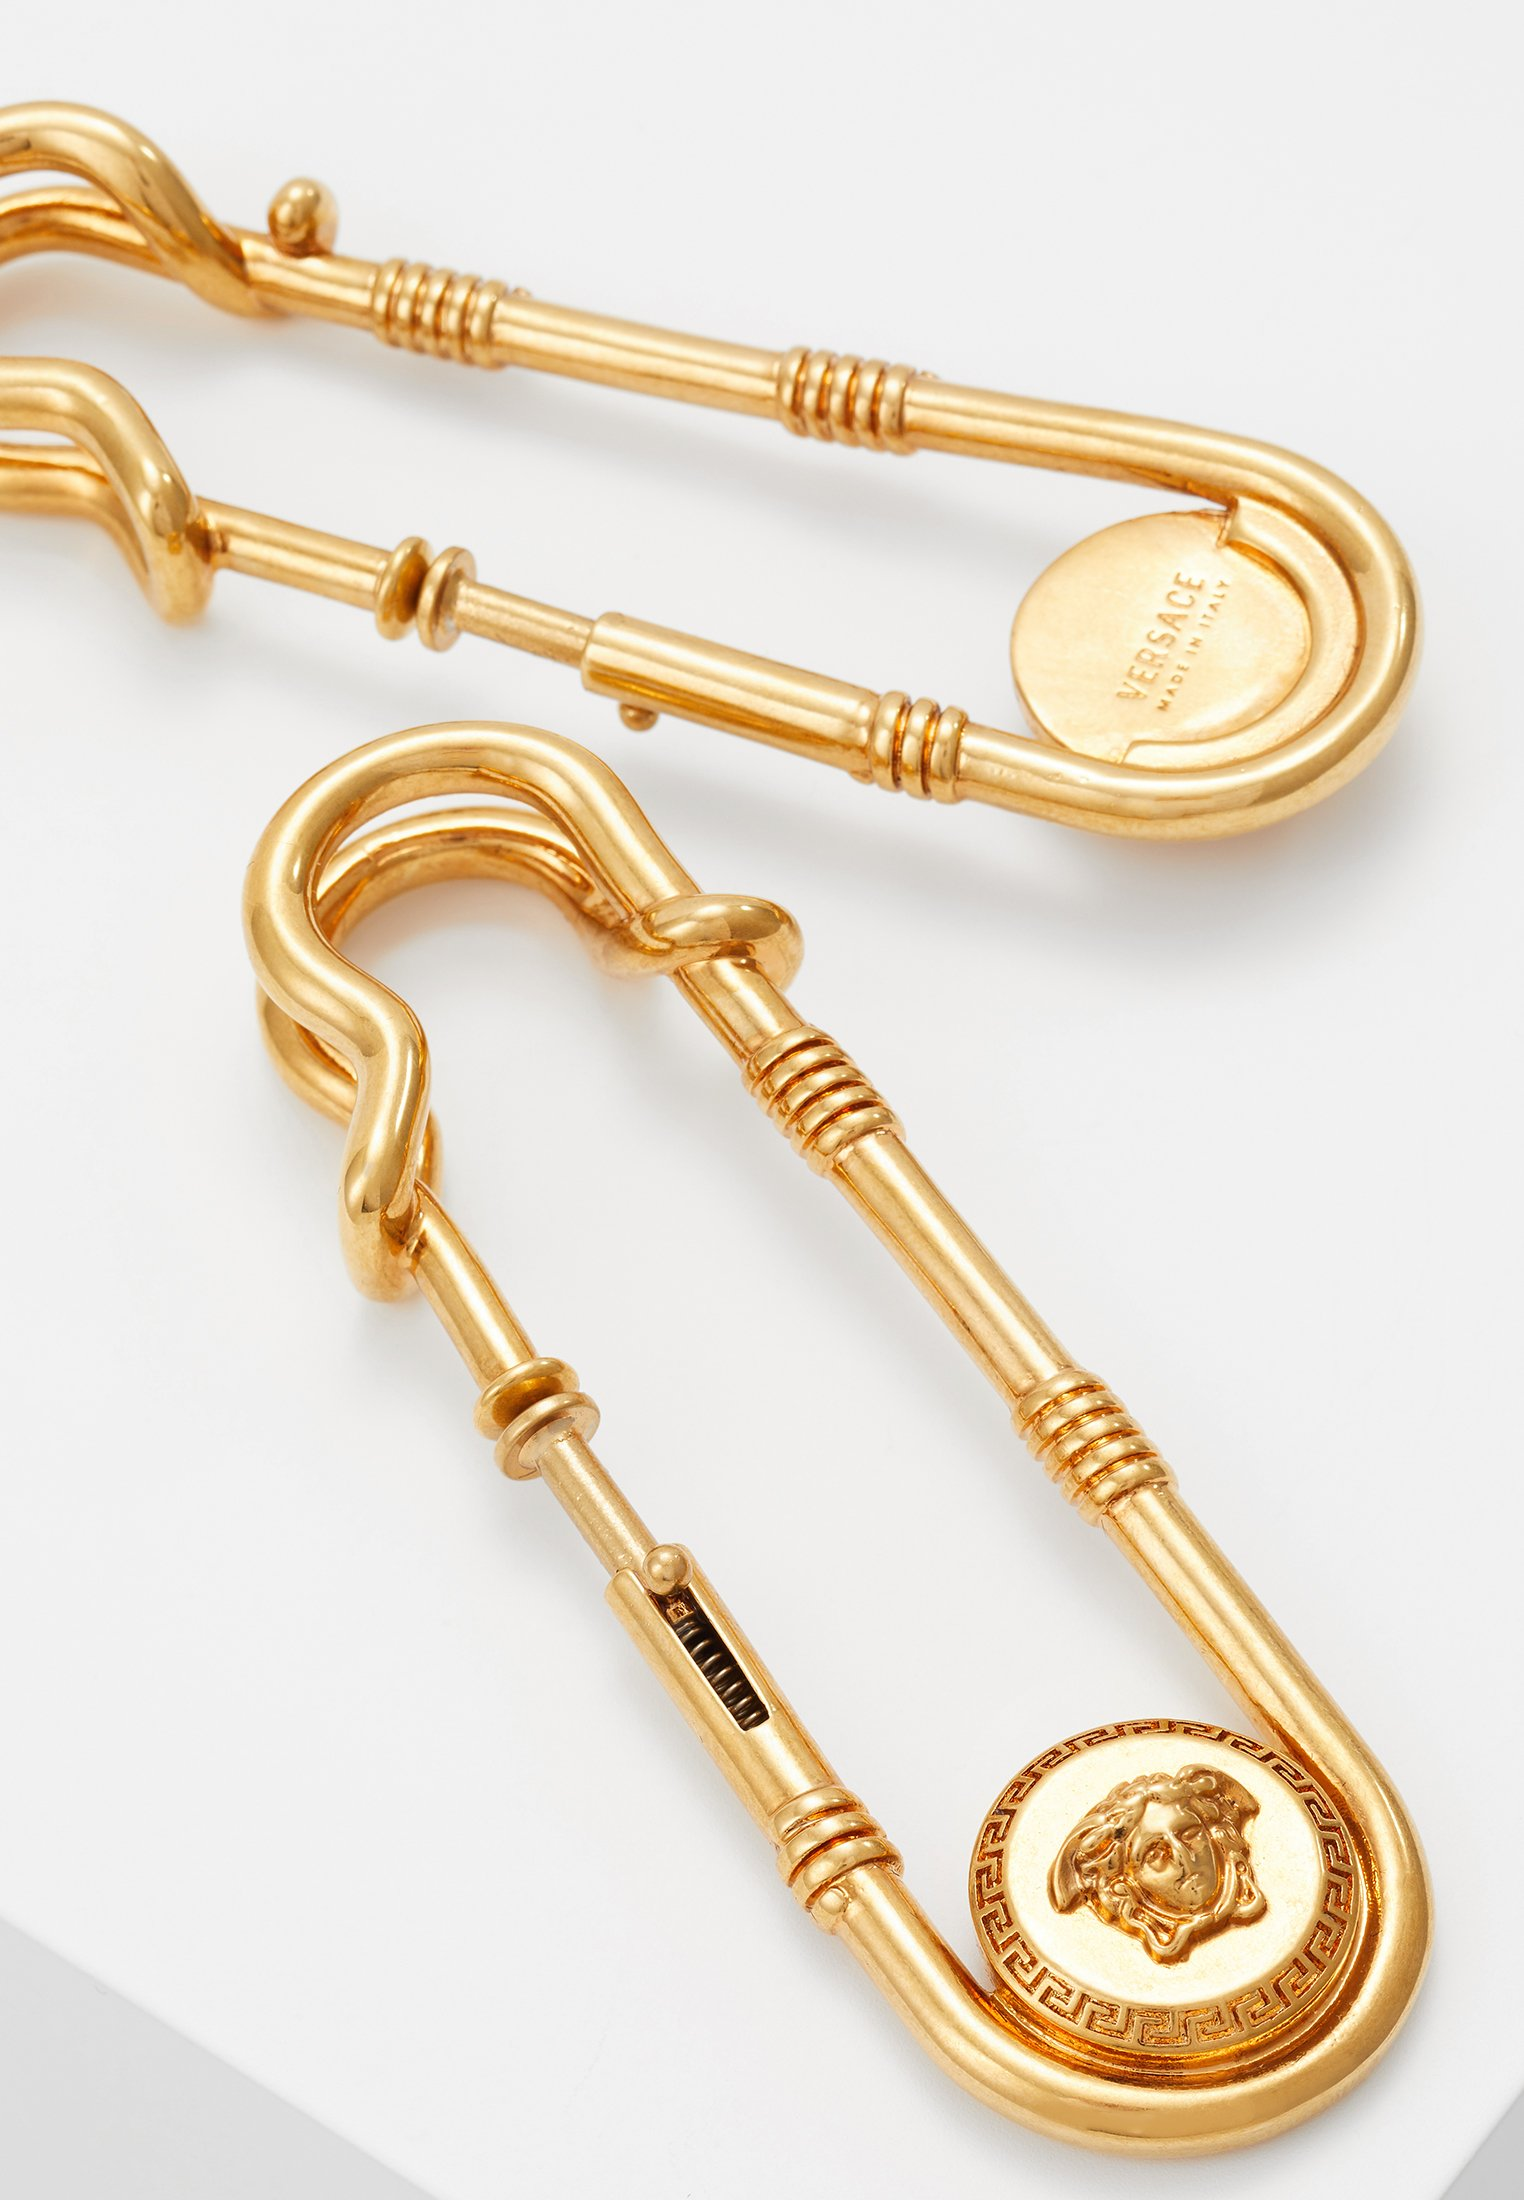 OrecchiniBoucles Gold Versace coloured Versace D'oreilles Gold coloured OrecchiniBoucles D'oreilles Versace vYb6gIf7y